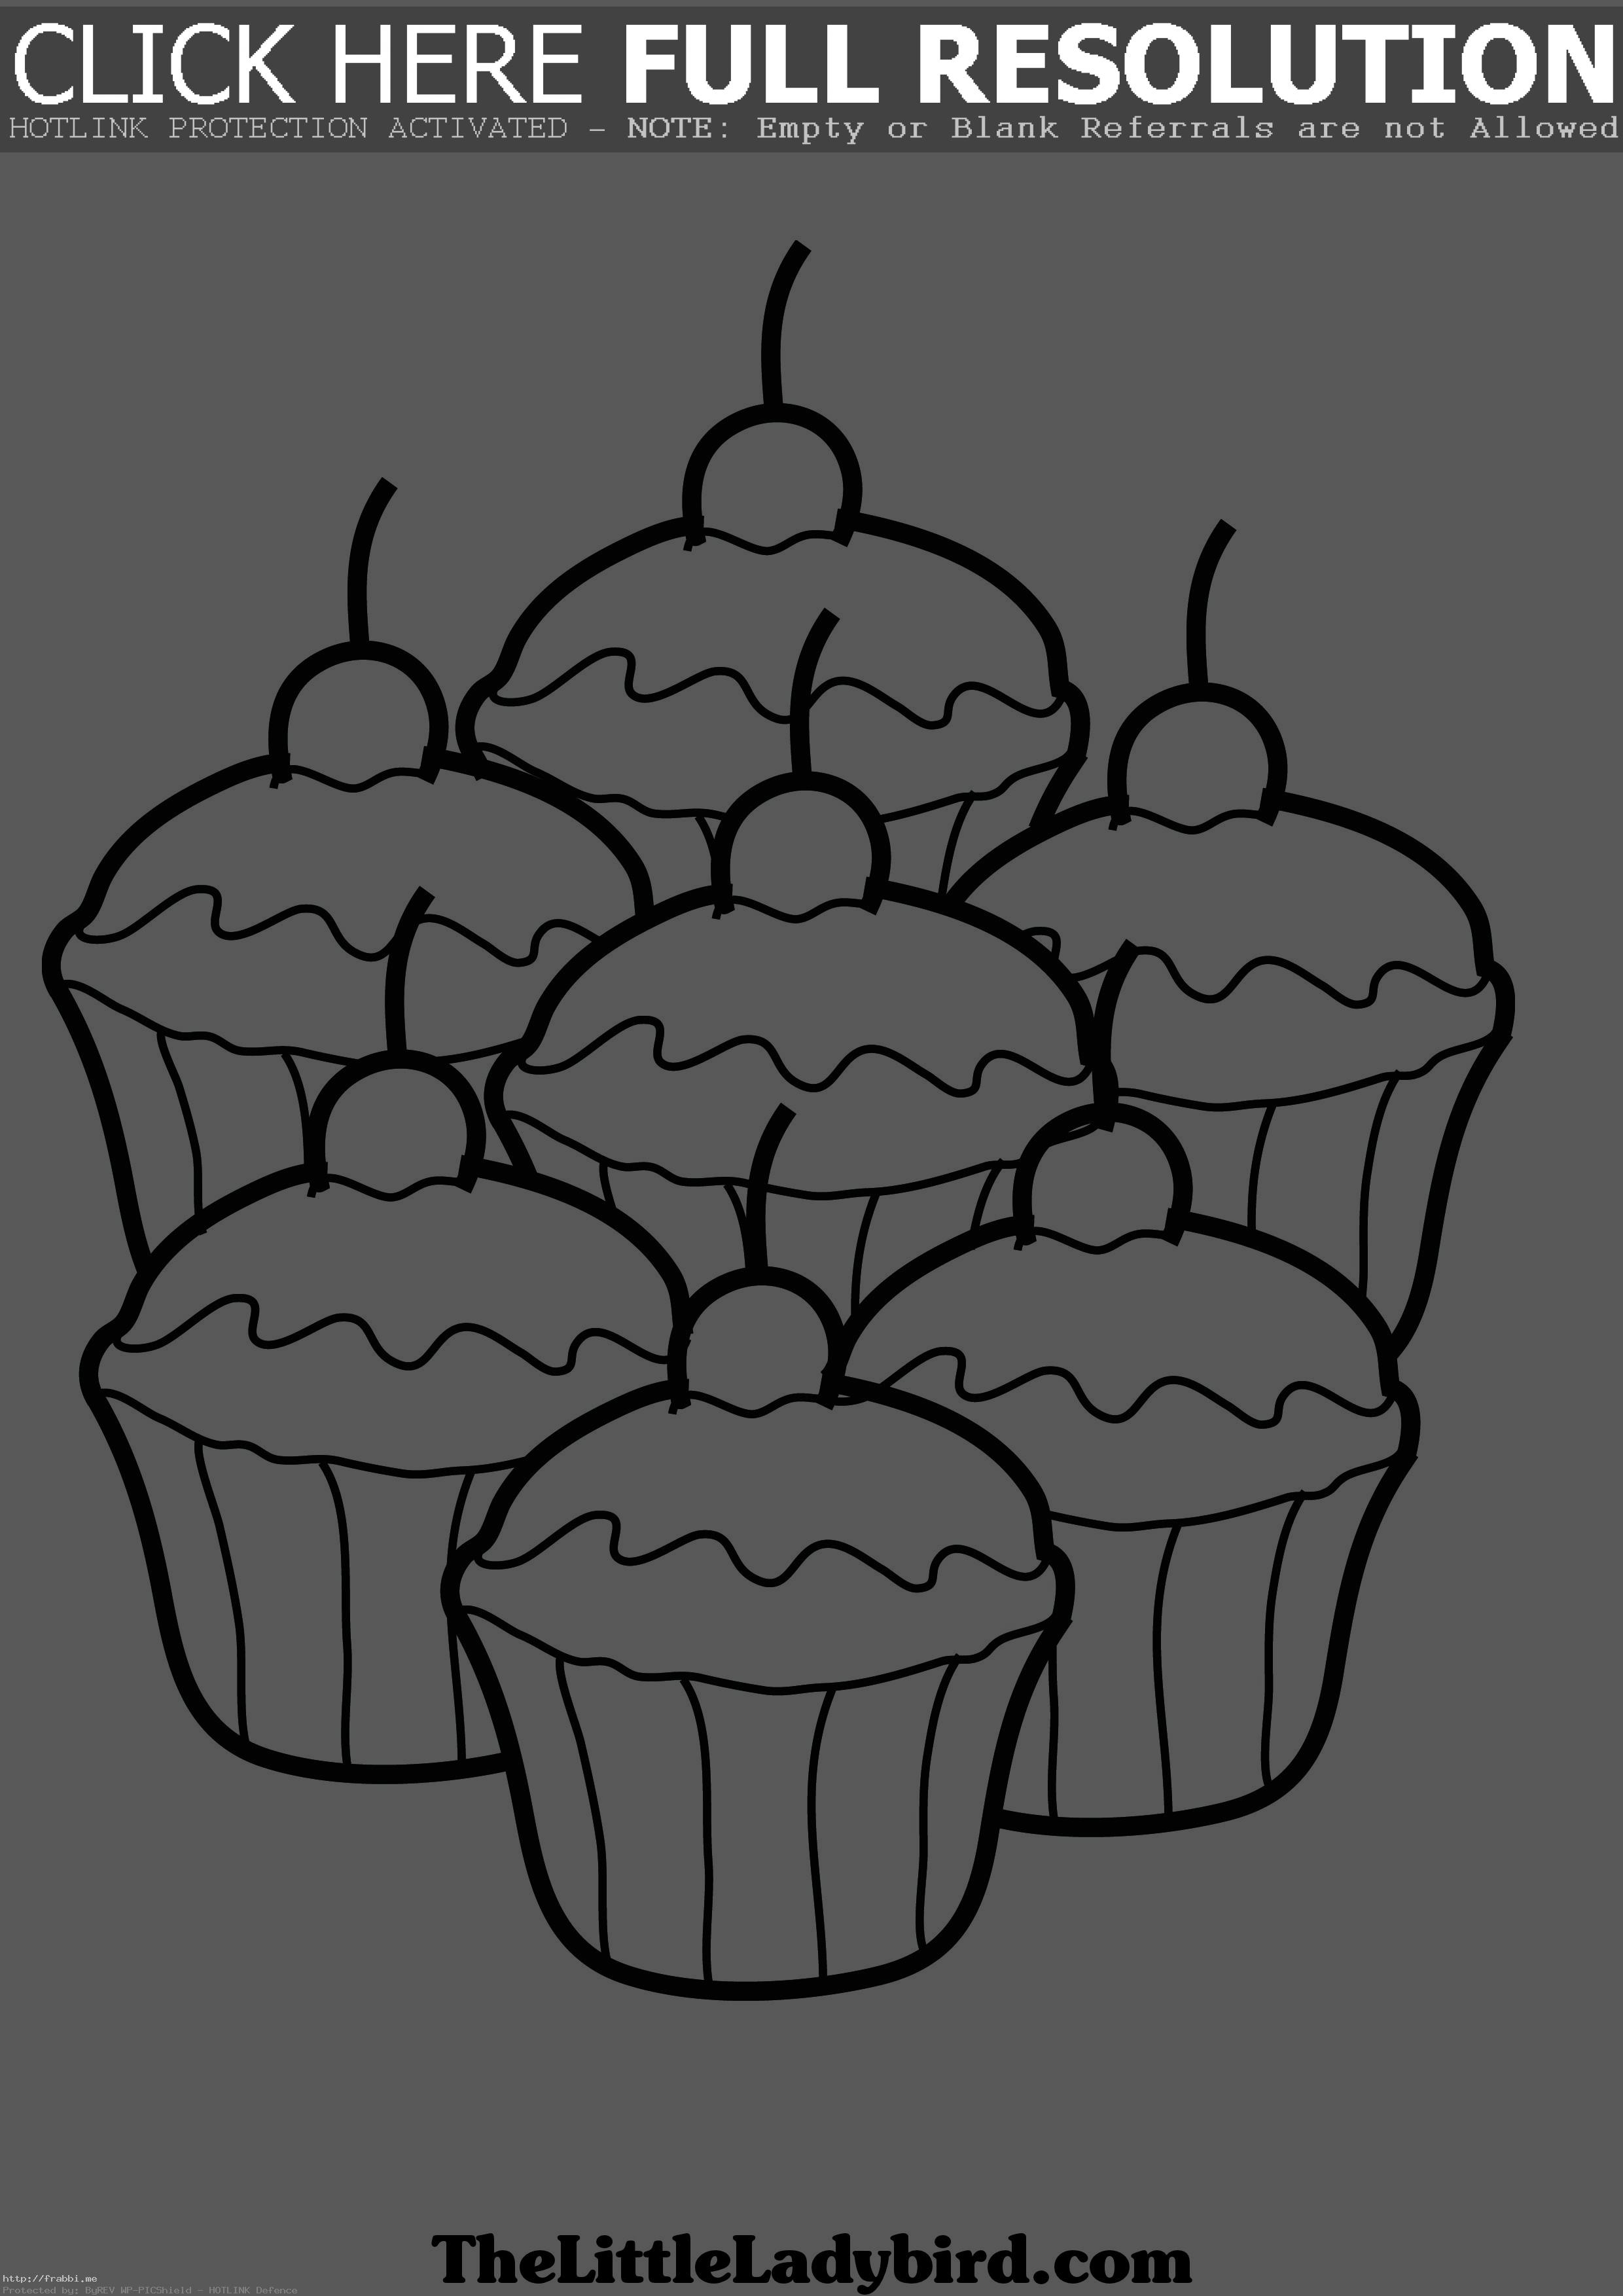 free printable birthday cupcake coloring pages ; cupcake-coloring-pages-free-cup-cake-pinterest-ribsvigyapan-of-cakes-to-print-page